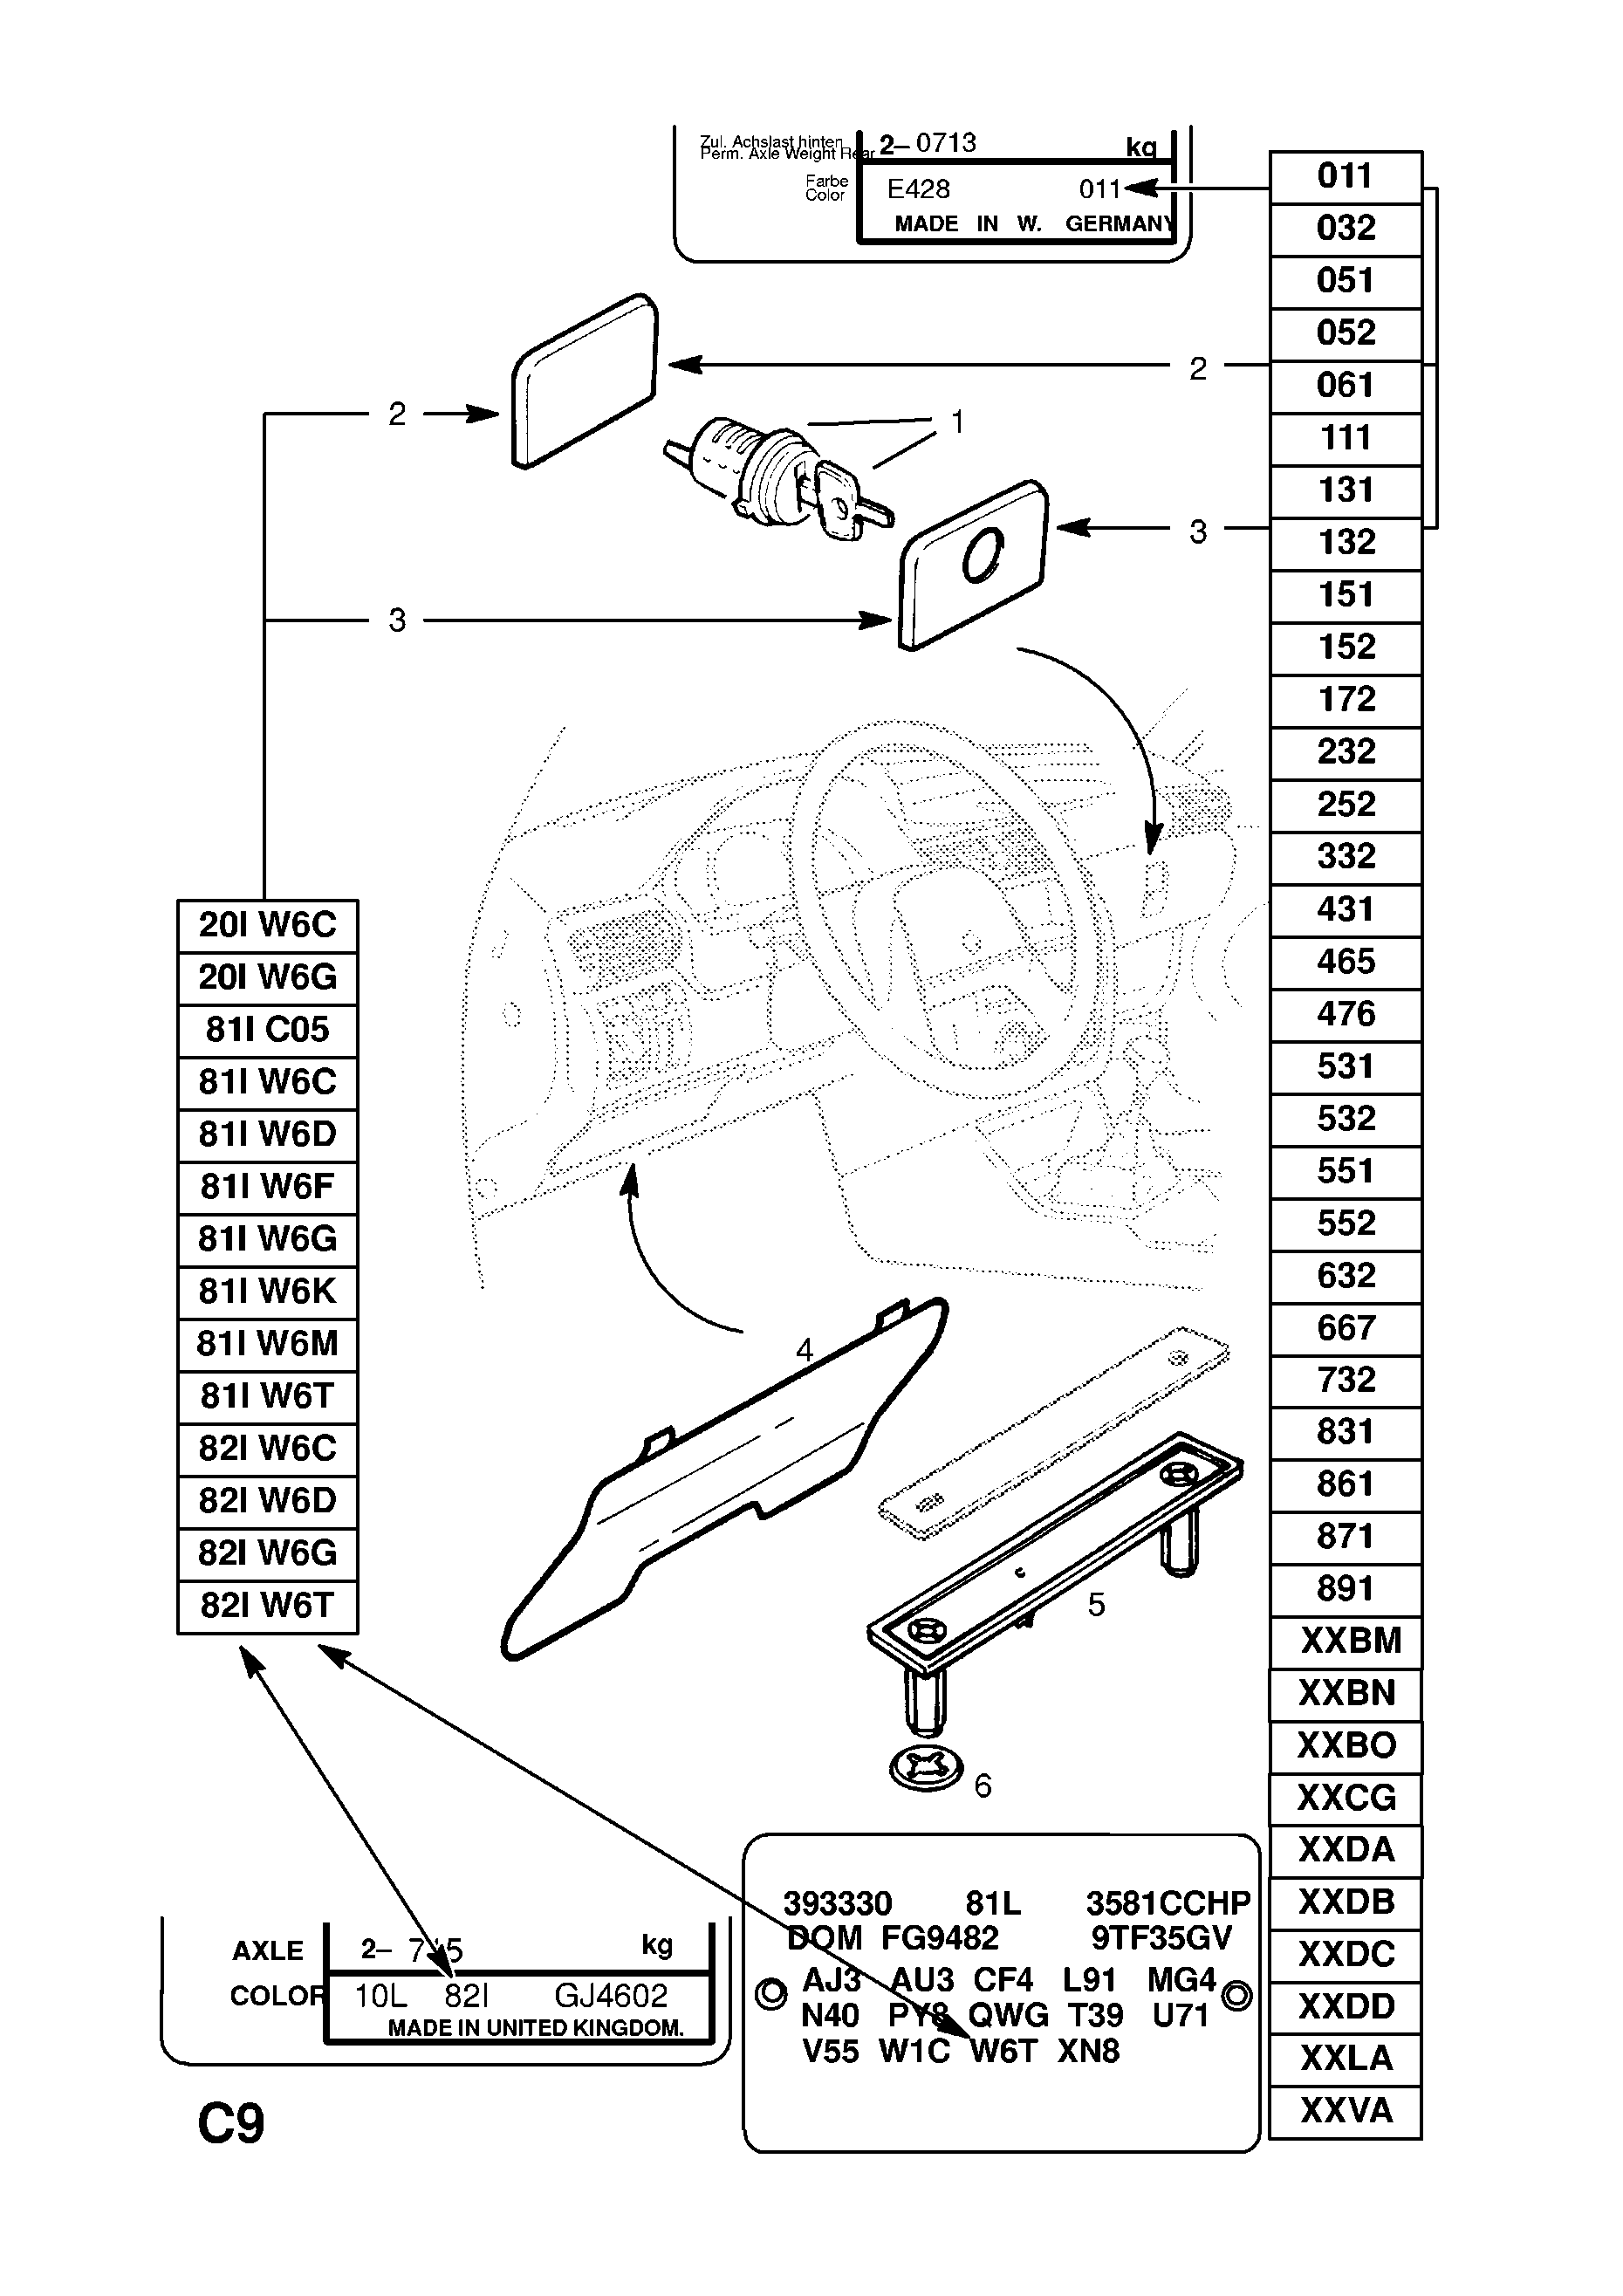 Fuse Box Diagram For Opel Kadett